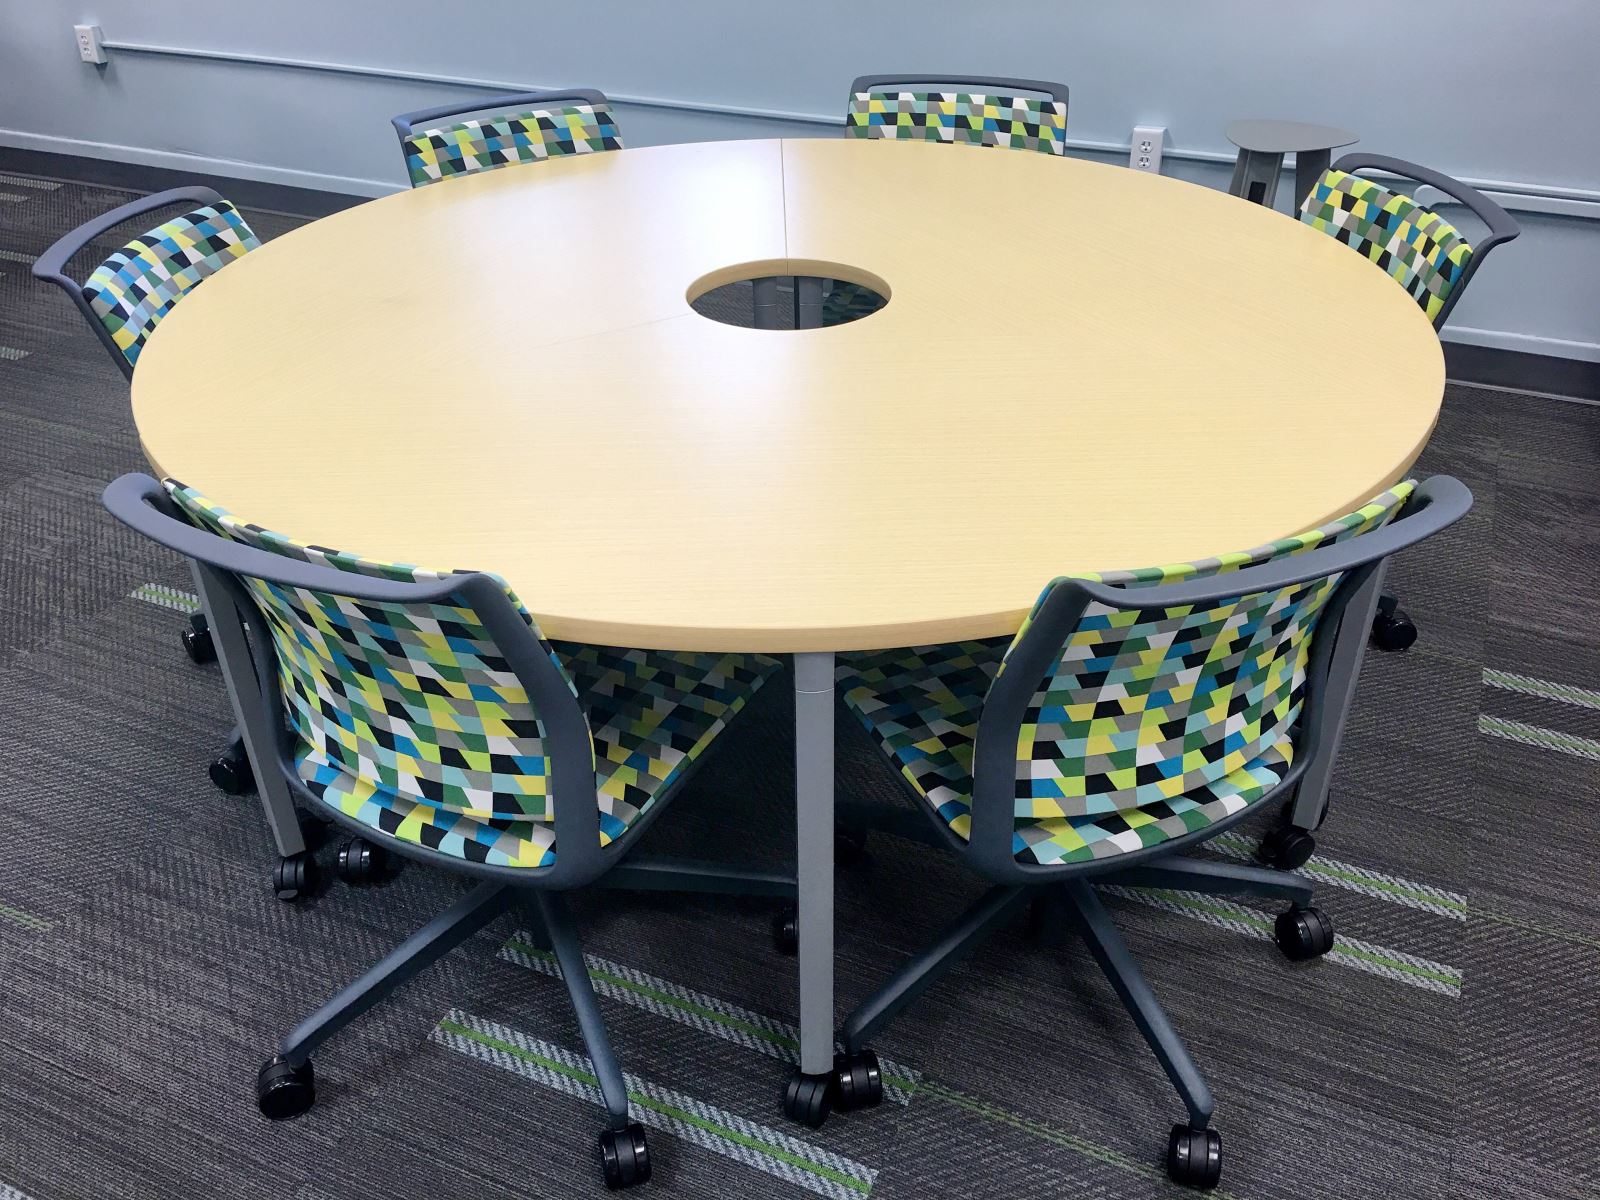 three pie/sectional tables that form a circle when placed together; six rolling chairs